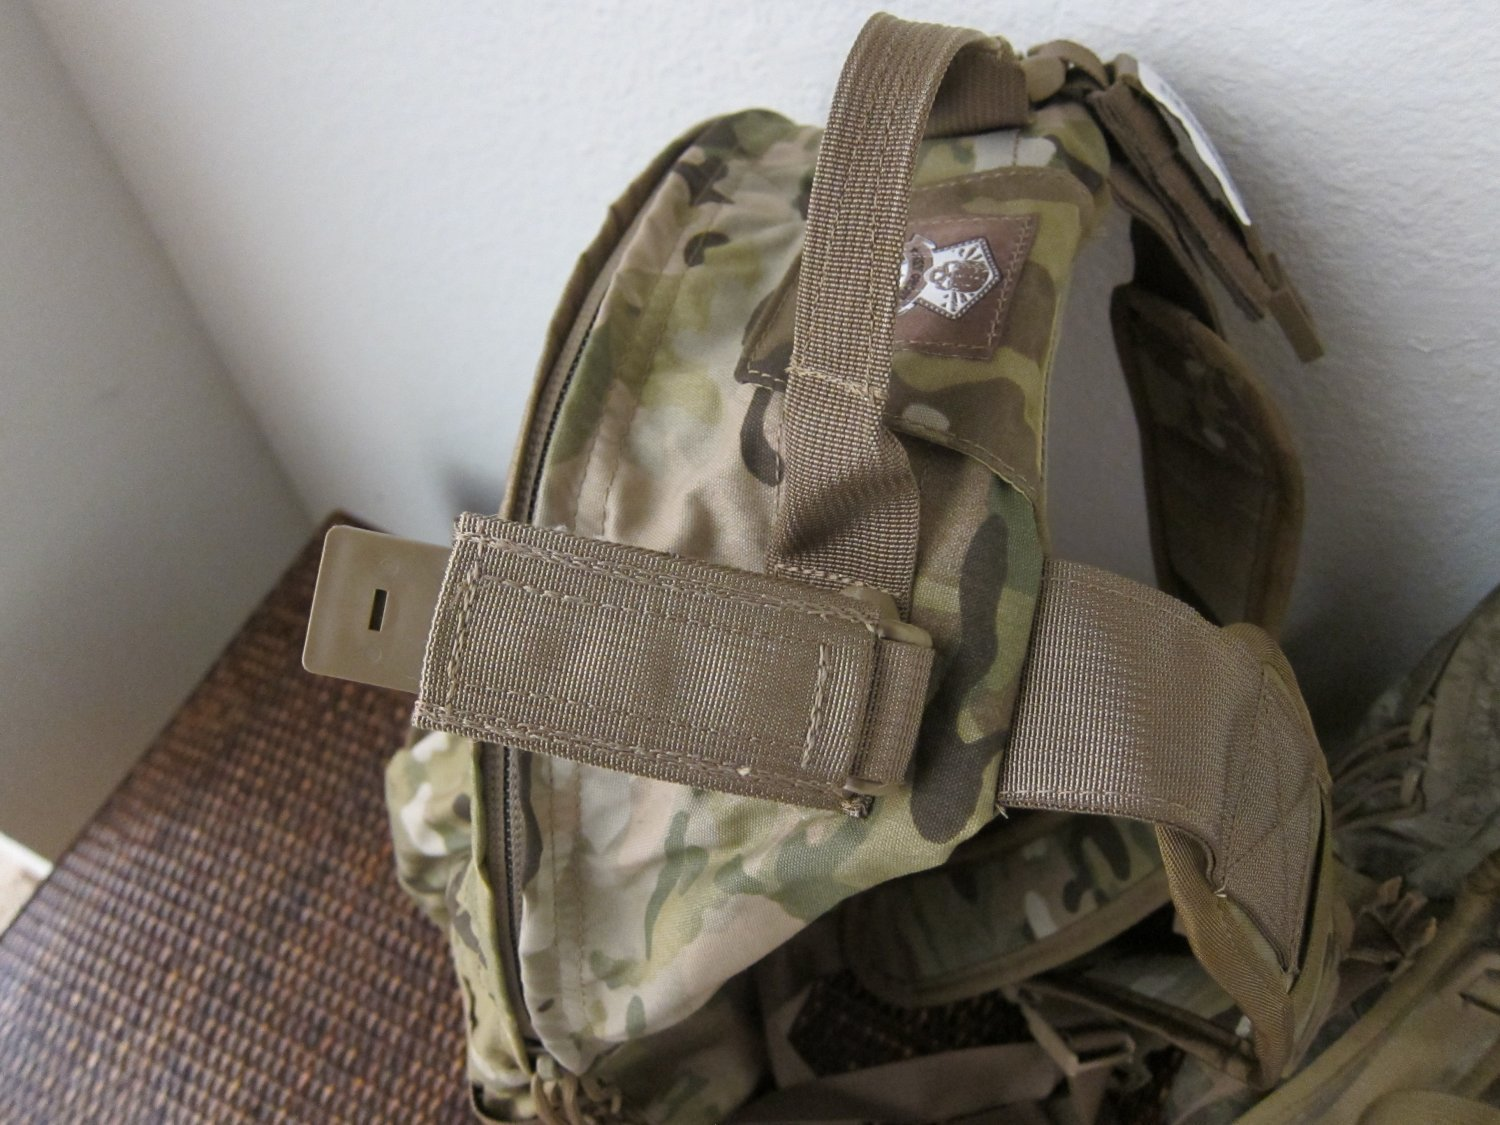 Grey Ghost Outlet Lightweight Assault Pack Fight Lite Operator Removable Pack LAP FLOR Crye MultiCam A TACS Camouflage 12 <!  :en  >Grey Ghost Lightweight Assault Pack/Fight Lite Operator Removable Pack (LAP/FLORP): MOLLE Attachable Lightweight Tactical Pack (Backpack) for Special Operations Forces (SOF) <!  :  >